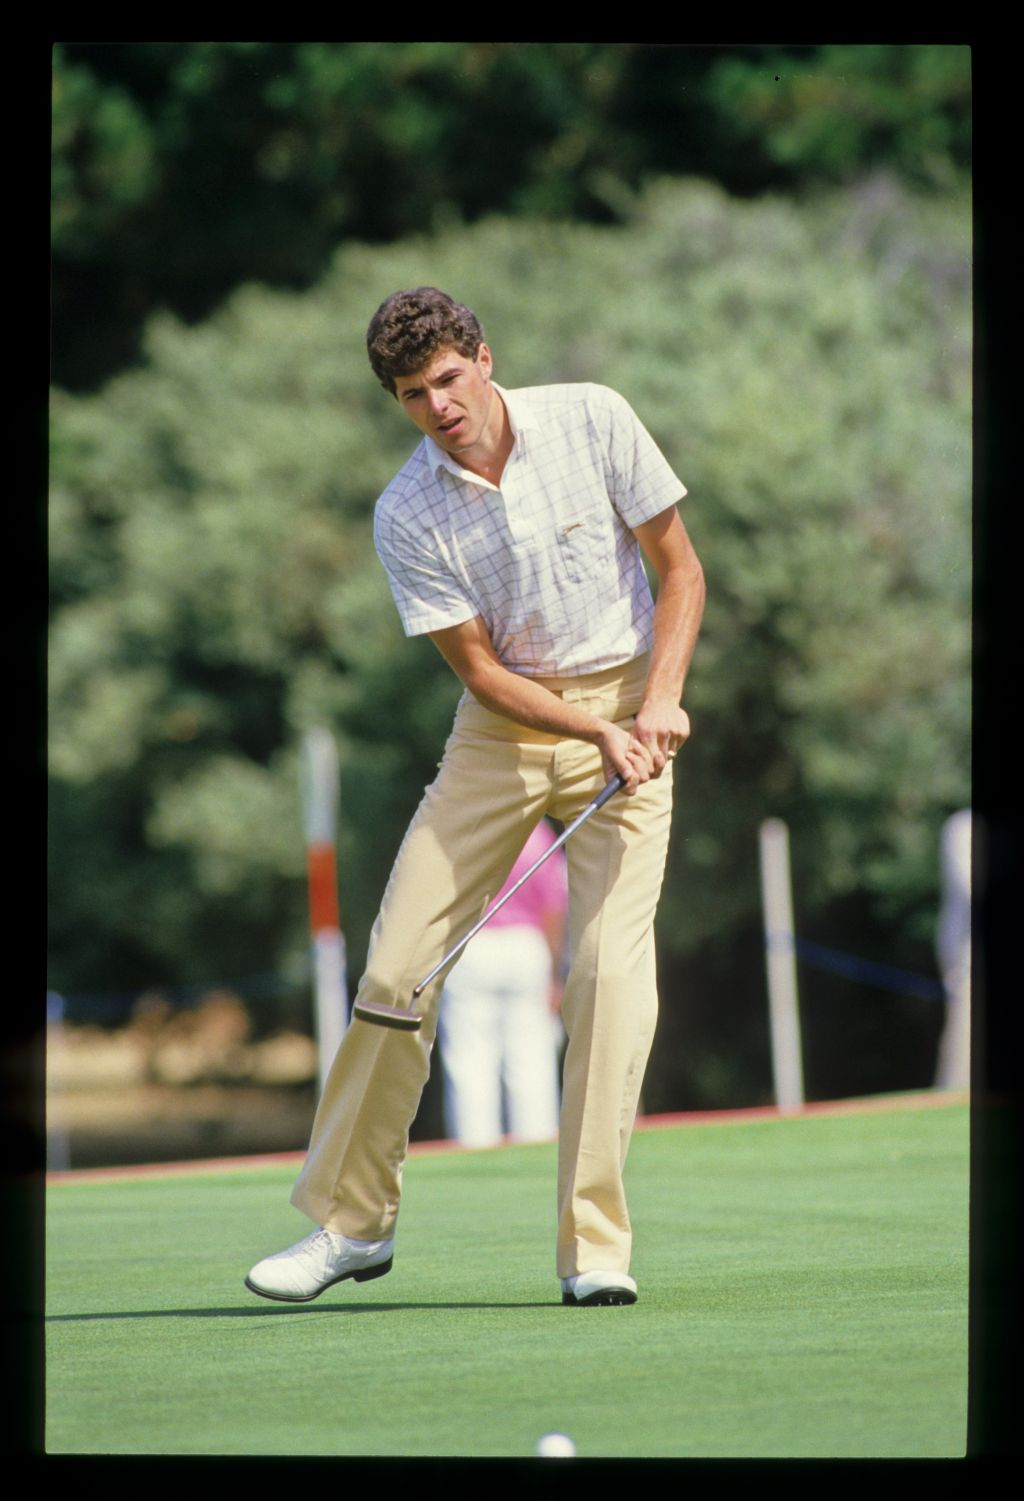 Philip Parkin reacting to a putt during the 1986 Australian Masters